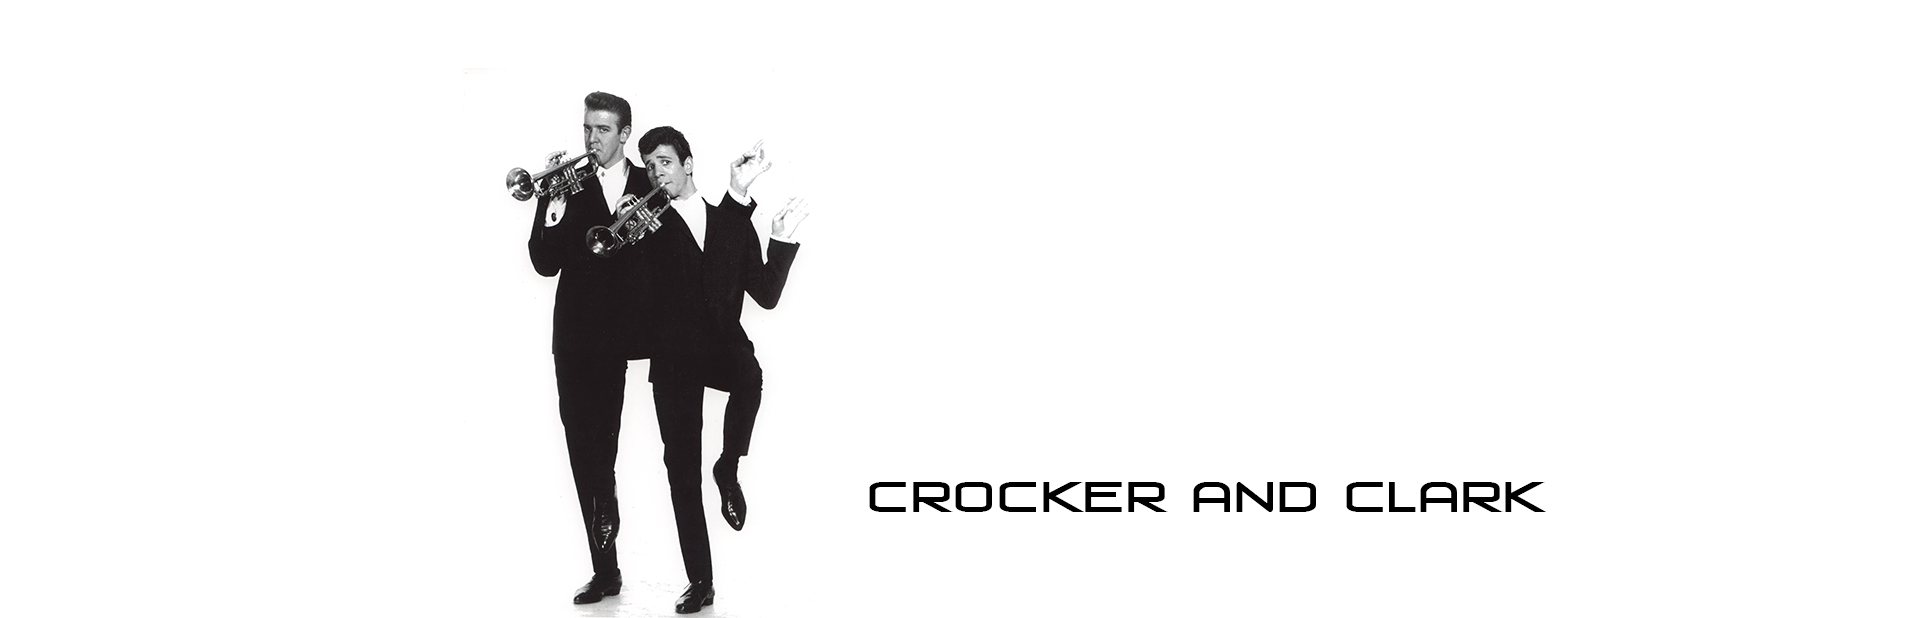 Crocker And Clark